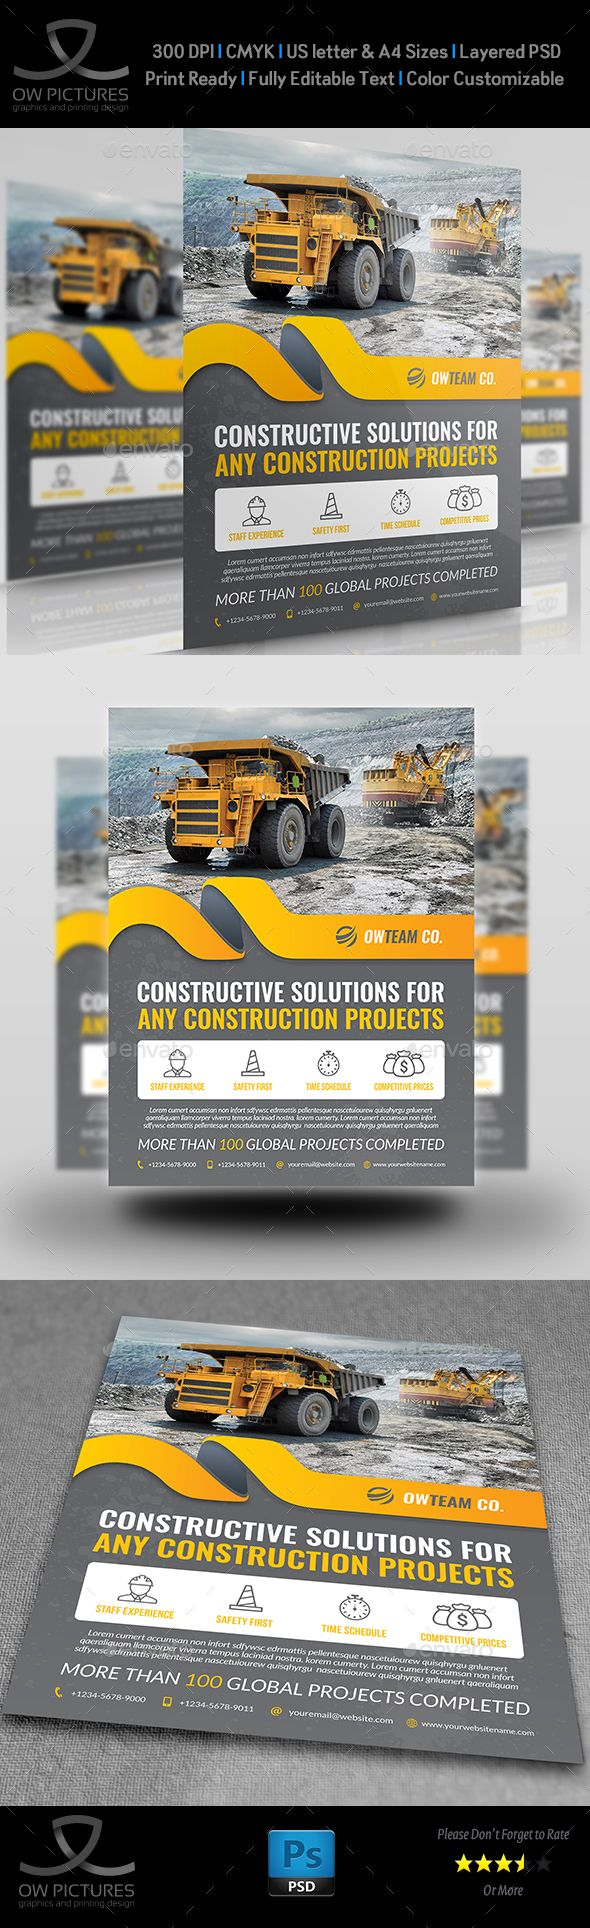 Construction Flyer Template PSD. Download here: https://graphicriver.net/item/construction-flyer-vol5/17571847?ref=ksioks